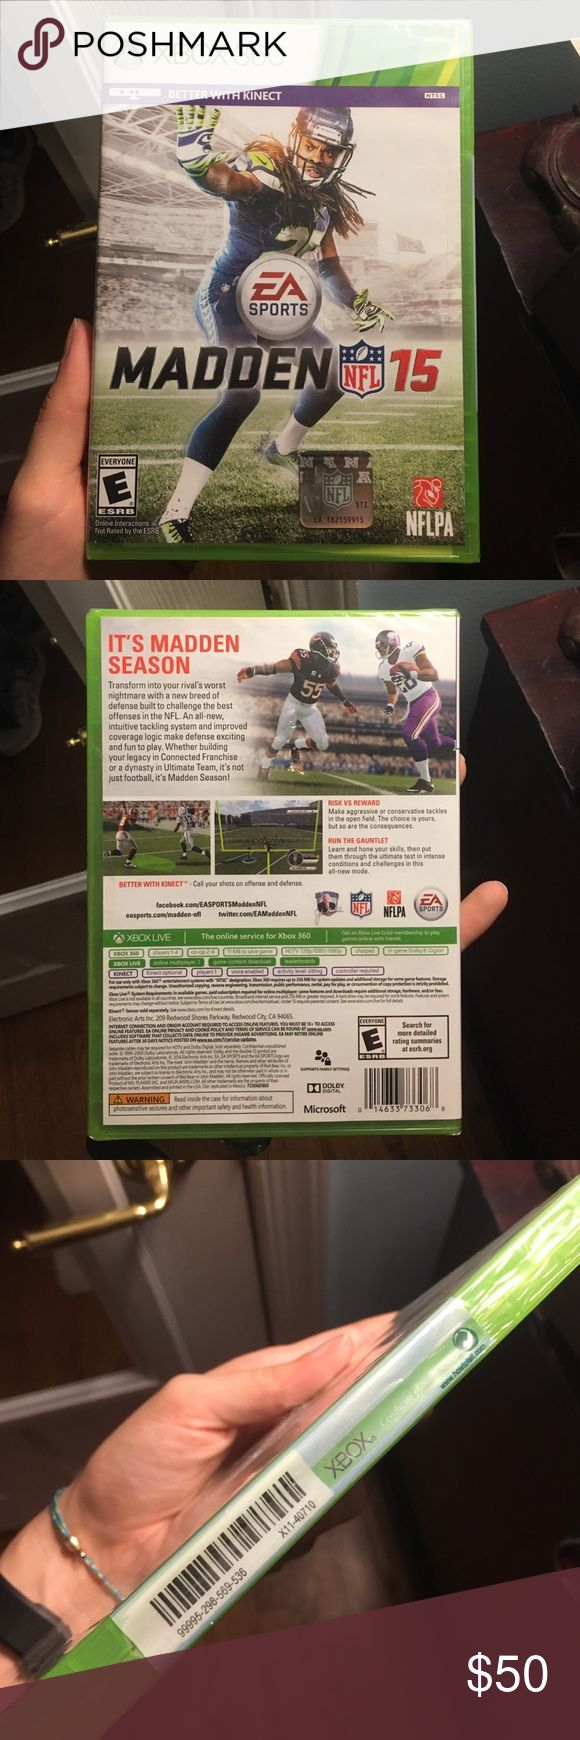 Madden 15 Brand new Xbox 360 game, never opened/ used. xbox Other